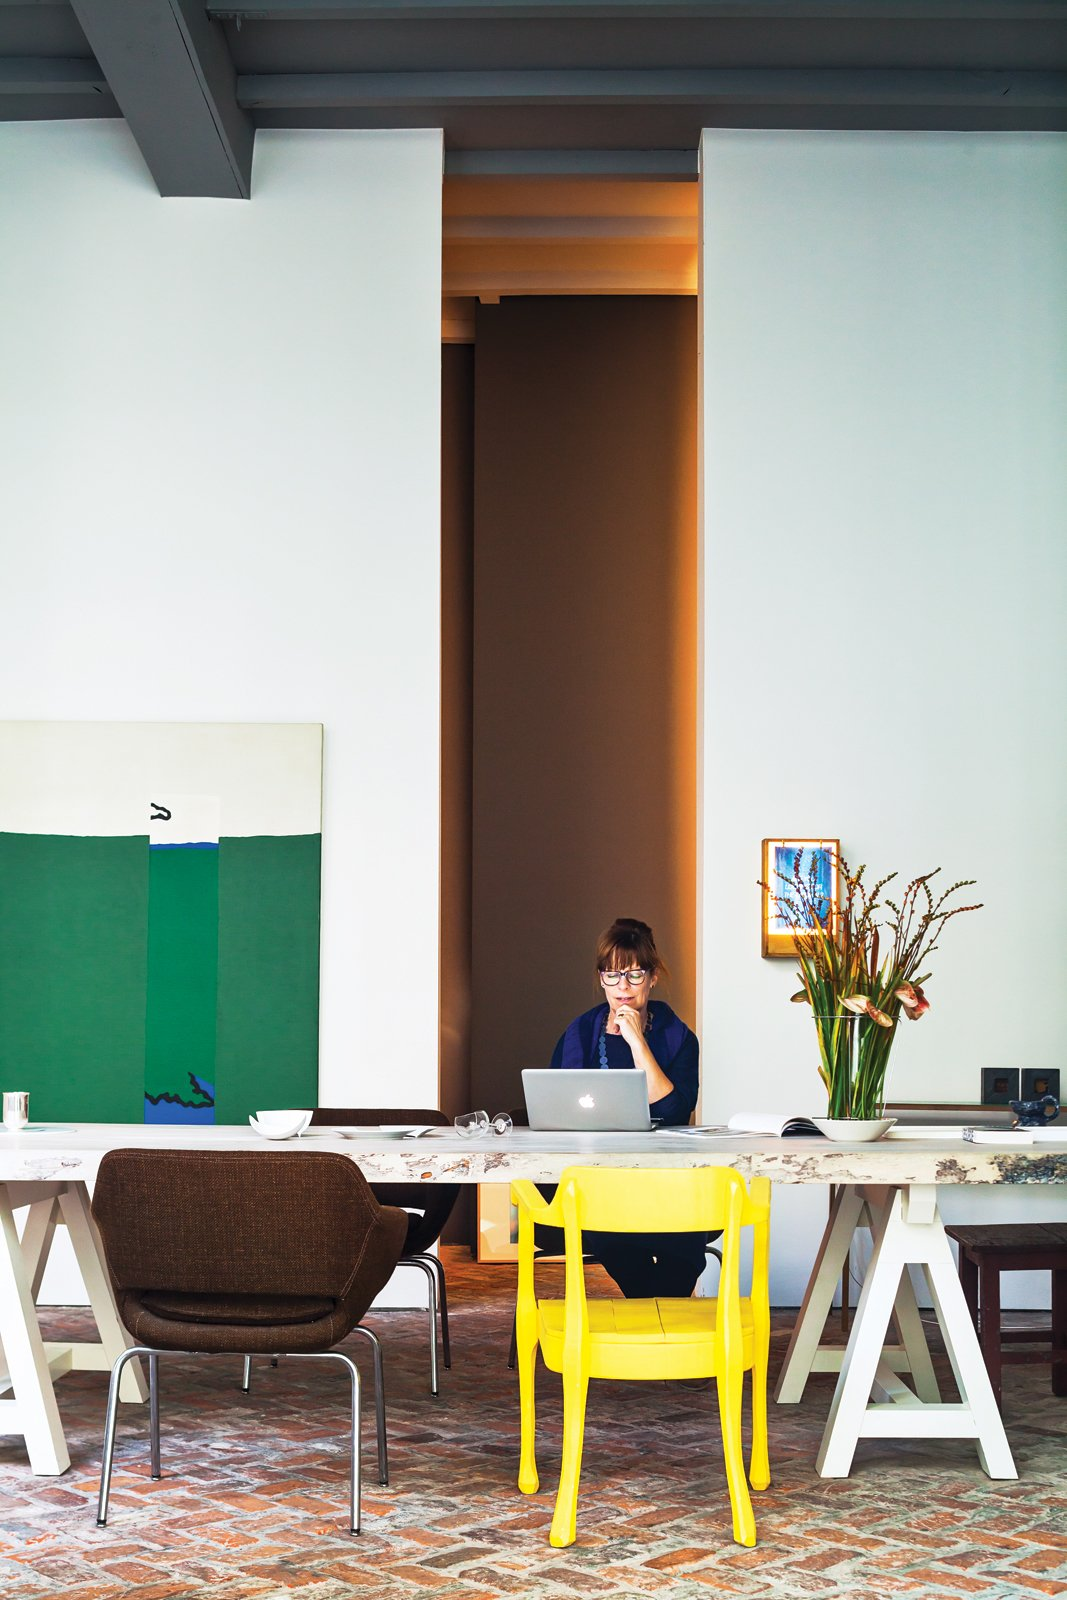 With the help of architect Bart Lens, Veerle Wenes and Bob Christiaens merged a 19th-century building with a 1970s one to create a combined home and art gallery in Antwerp. In the dining room downstairs, Wenes entertains family, friends, and gallery visitors. The yellow chair is by Jens Fager. Tagged: Office, Desk, and Chair.  Photo 3 of 19 in This House Proves Art Galleries Can Be Super-Friendly